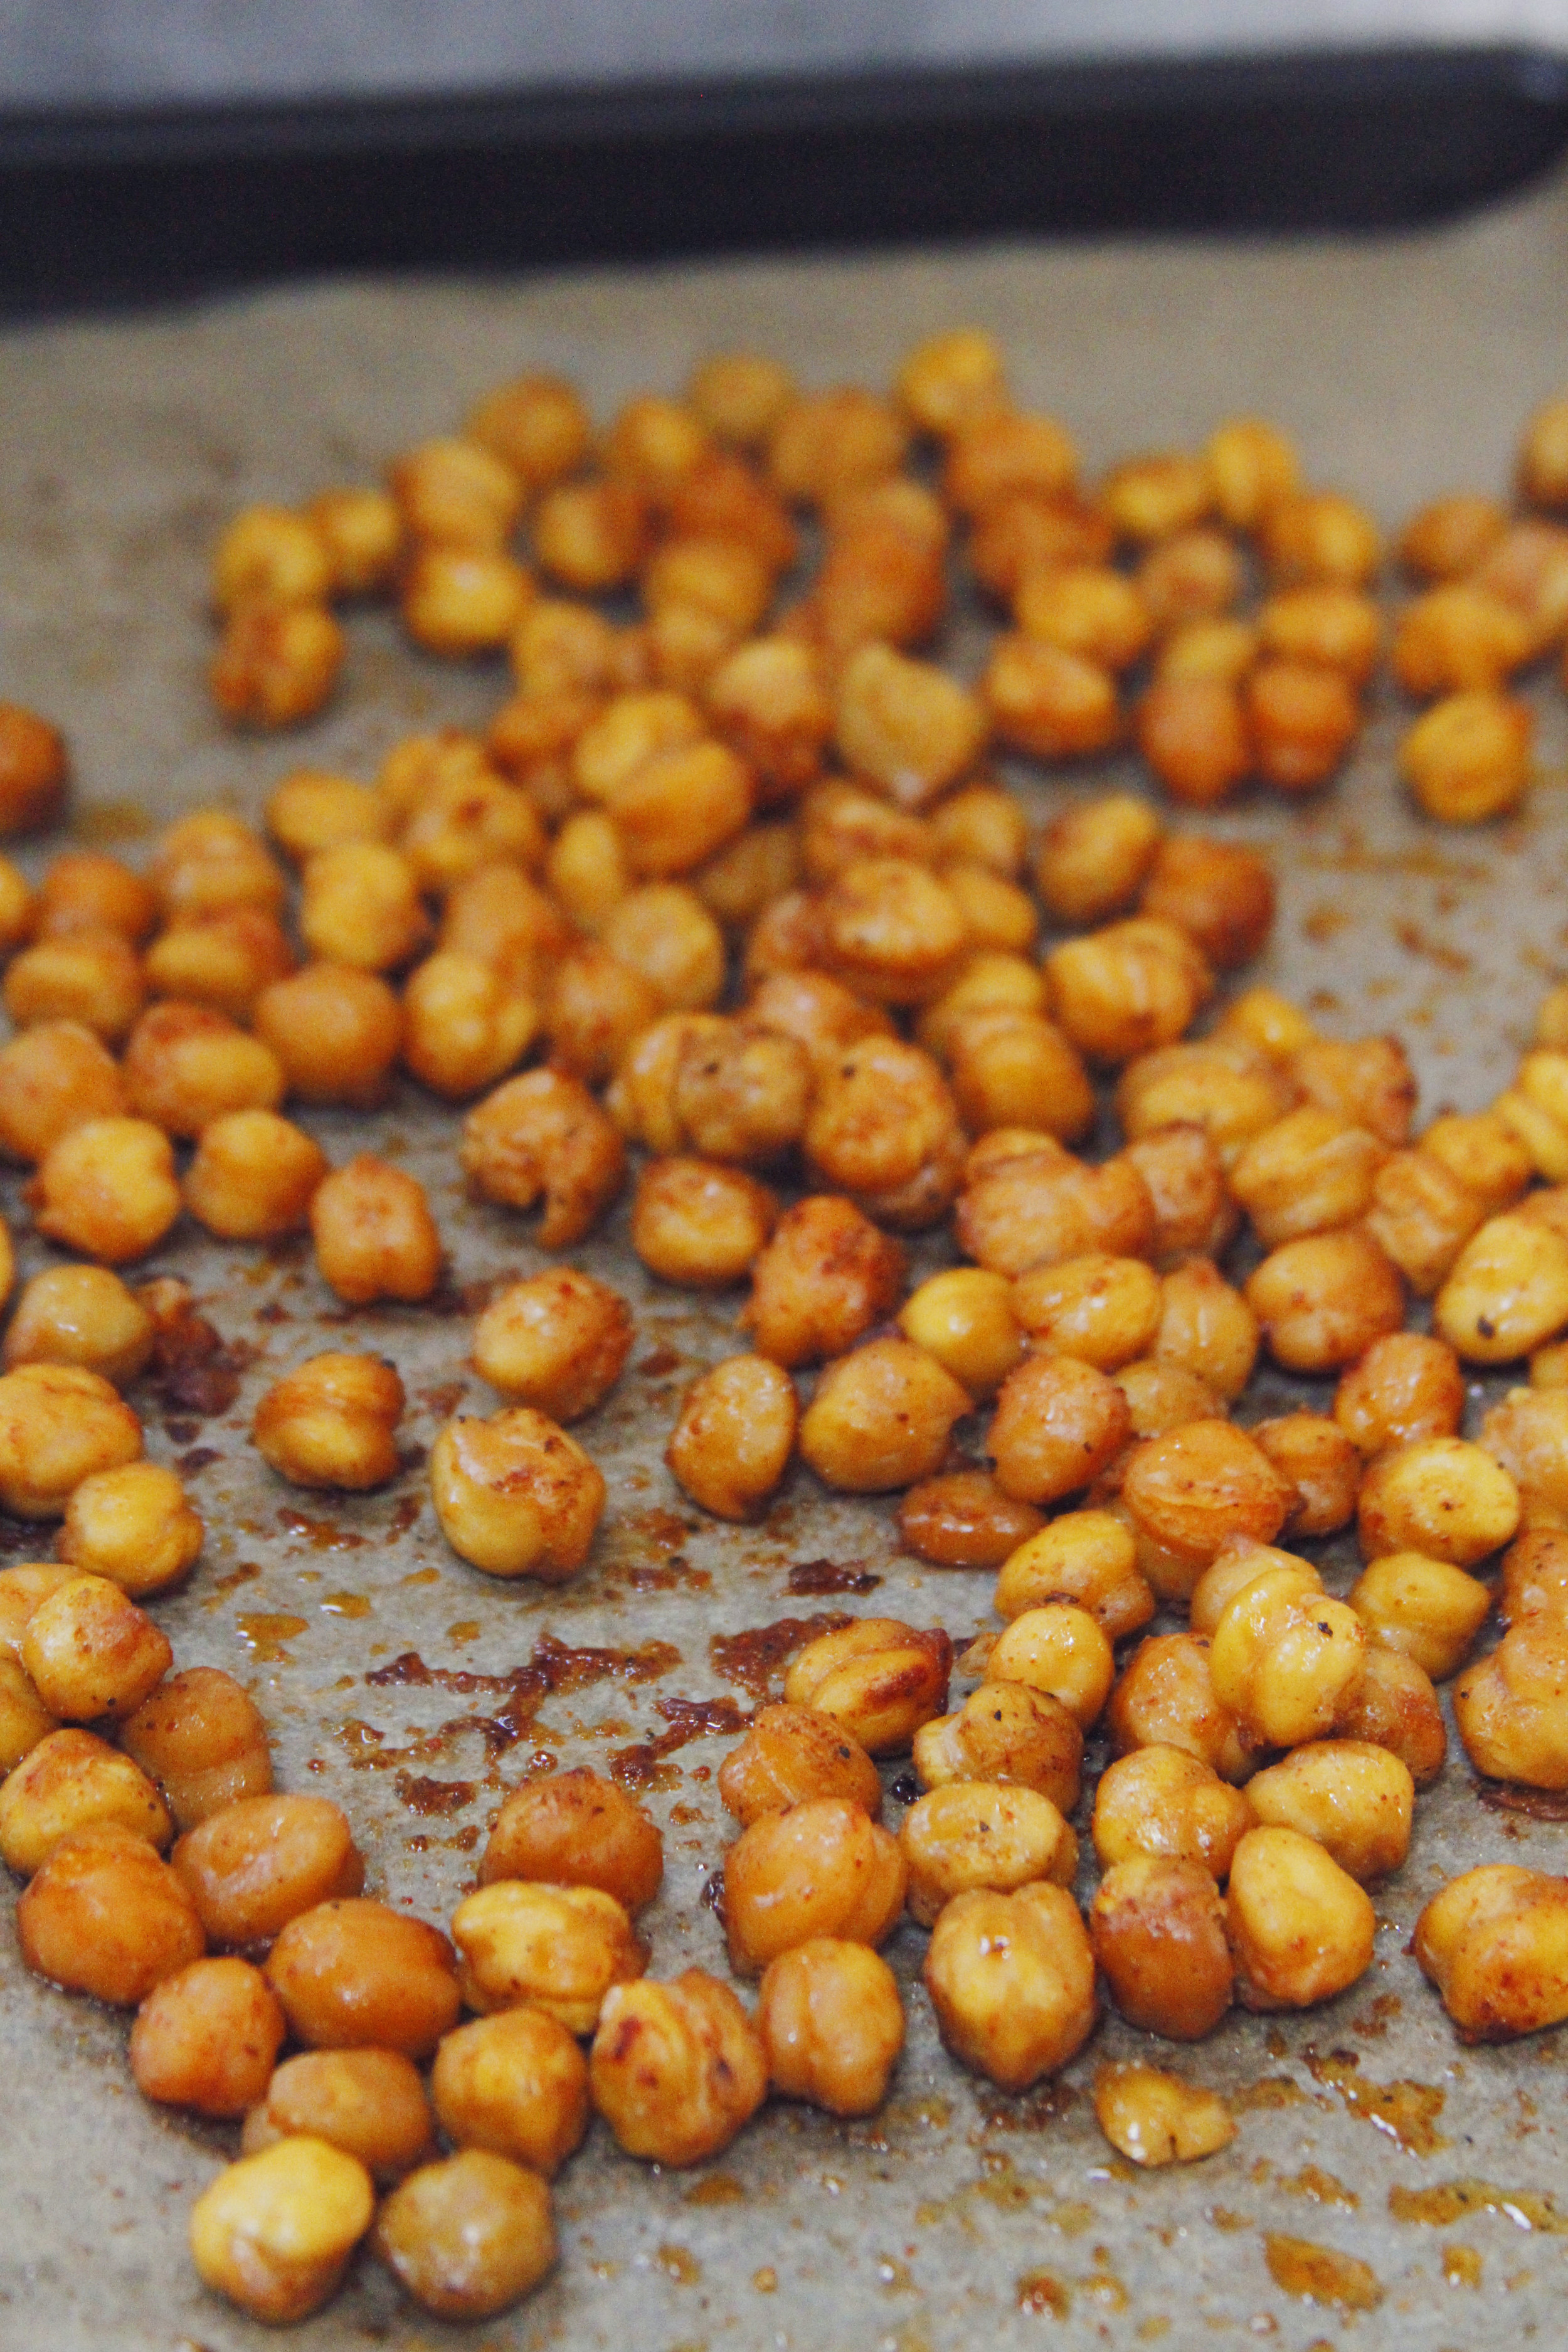 Spicy baked chickpeas // Print (Em) Shop